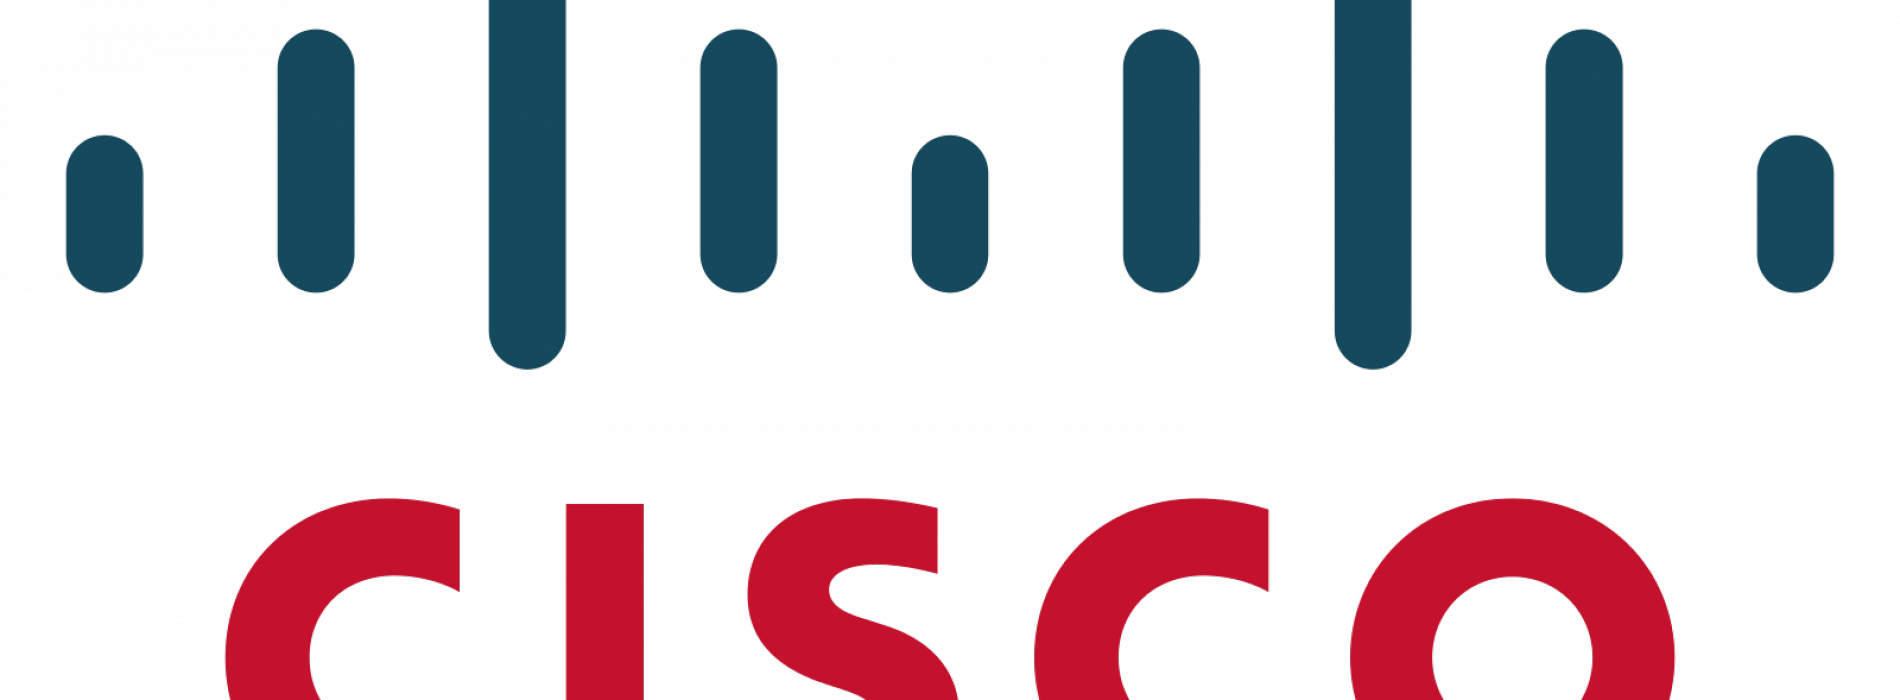 Google and Cisco sign cross-license patent deal